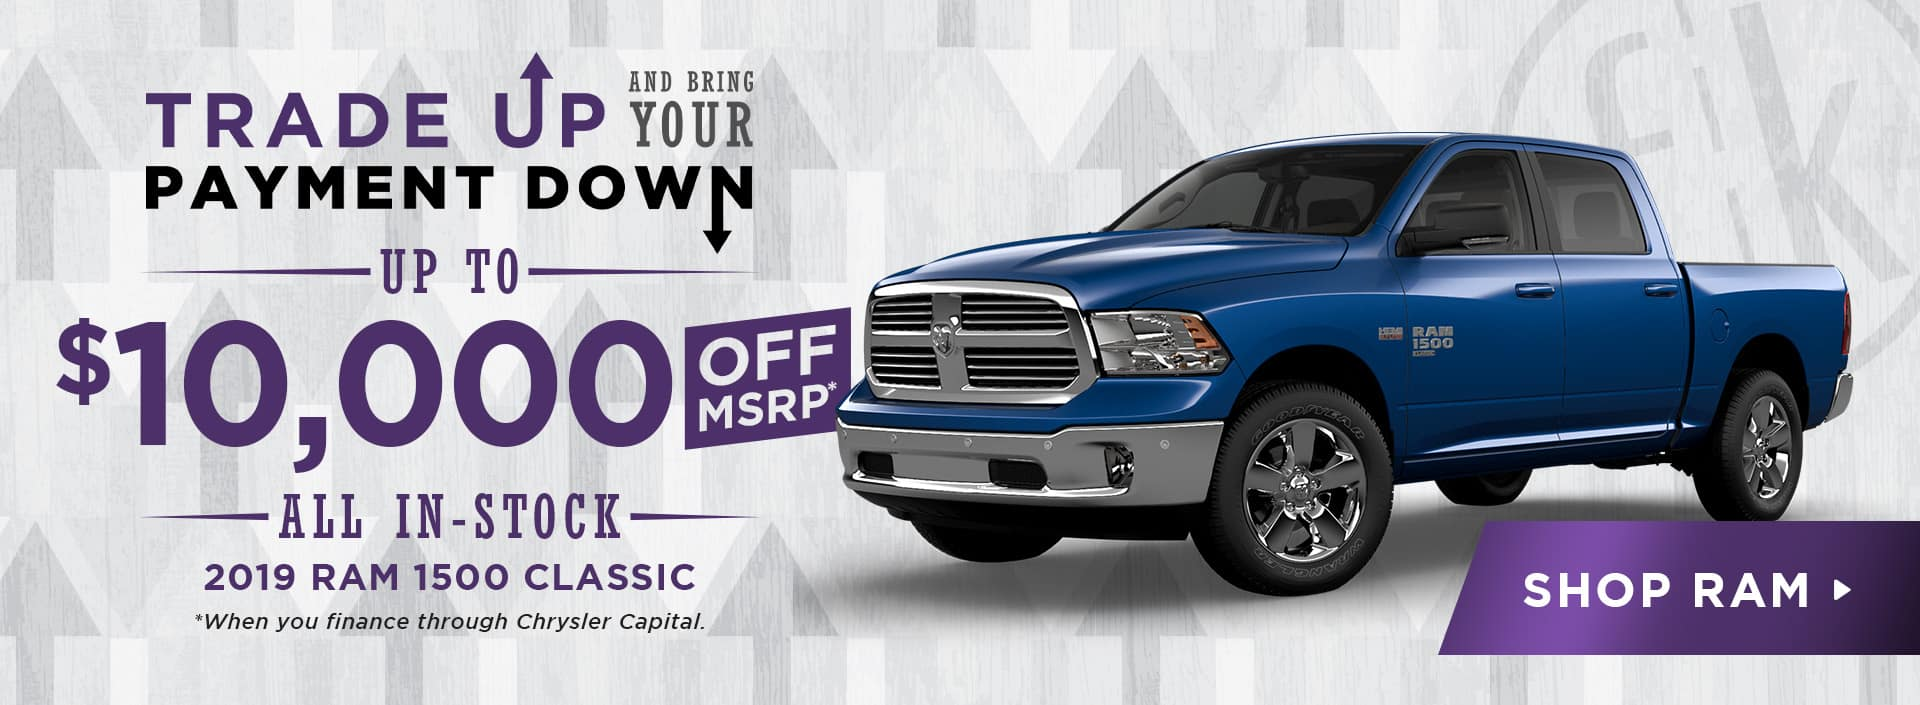 Up To $10,000 Off All In-Stock 2019 RAM 1500 Classic